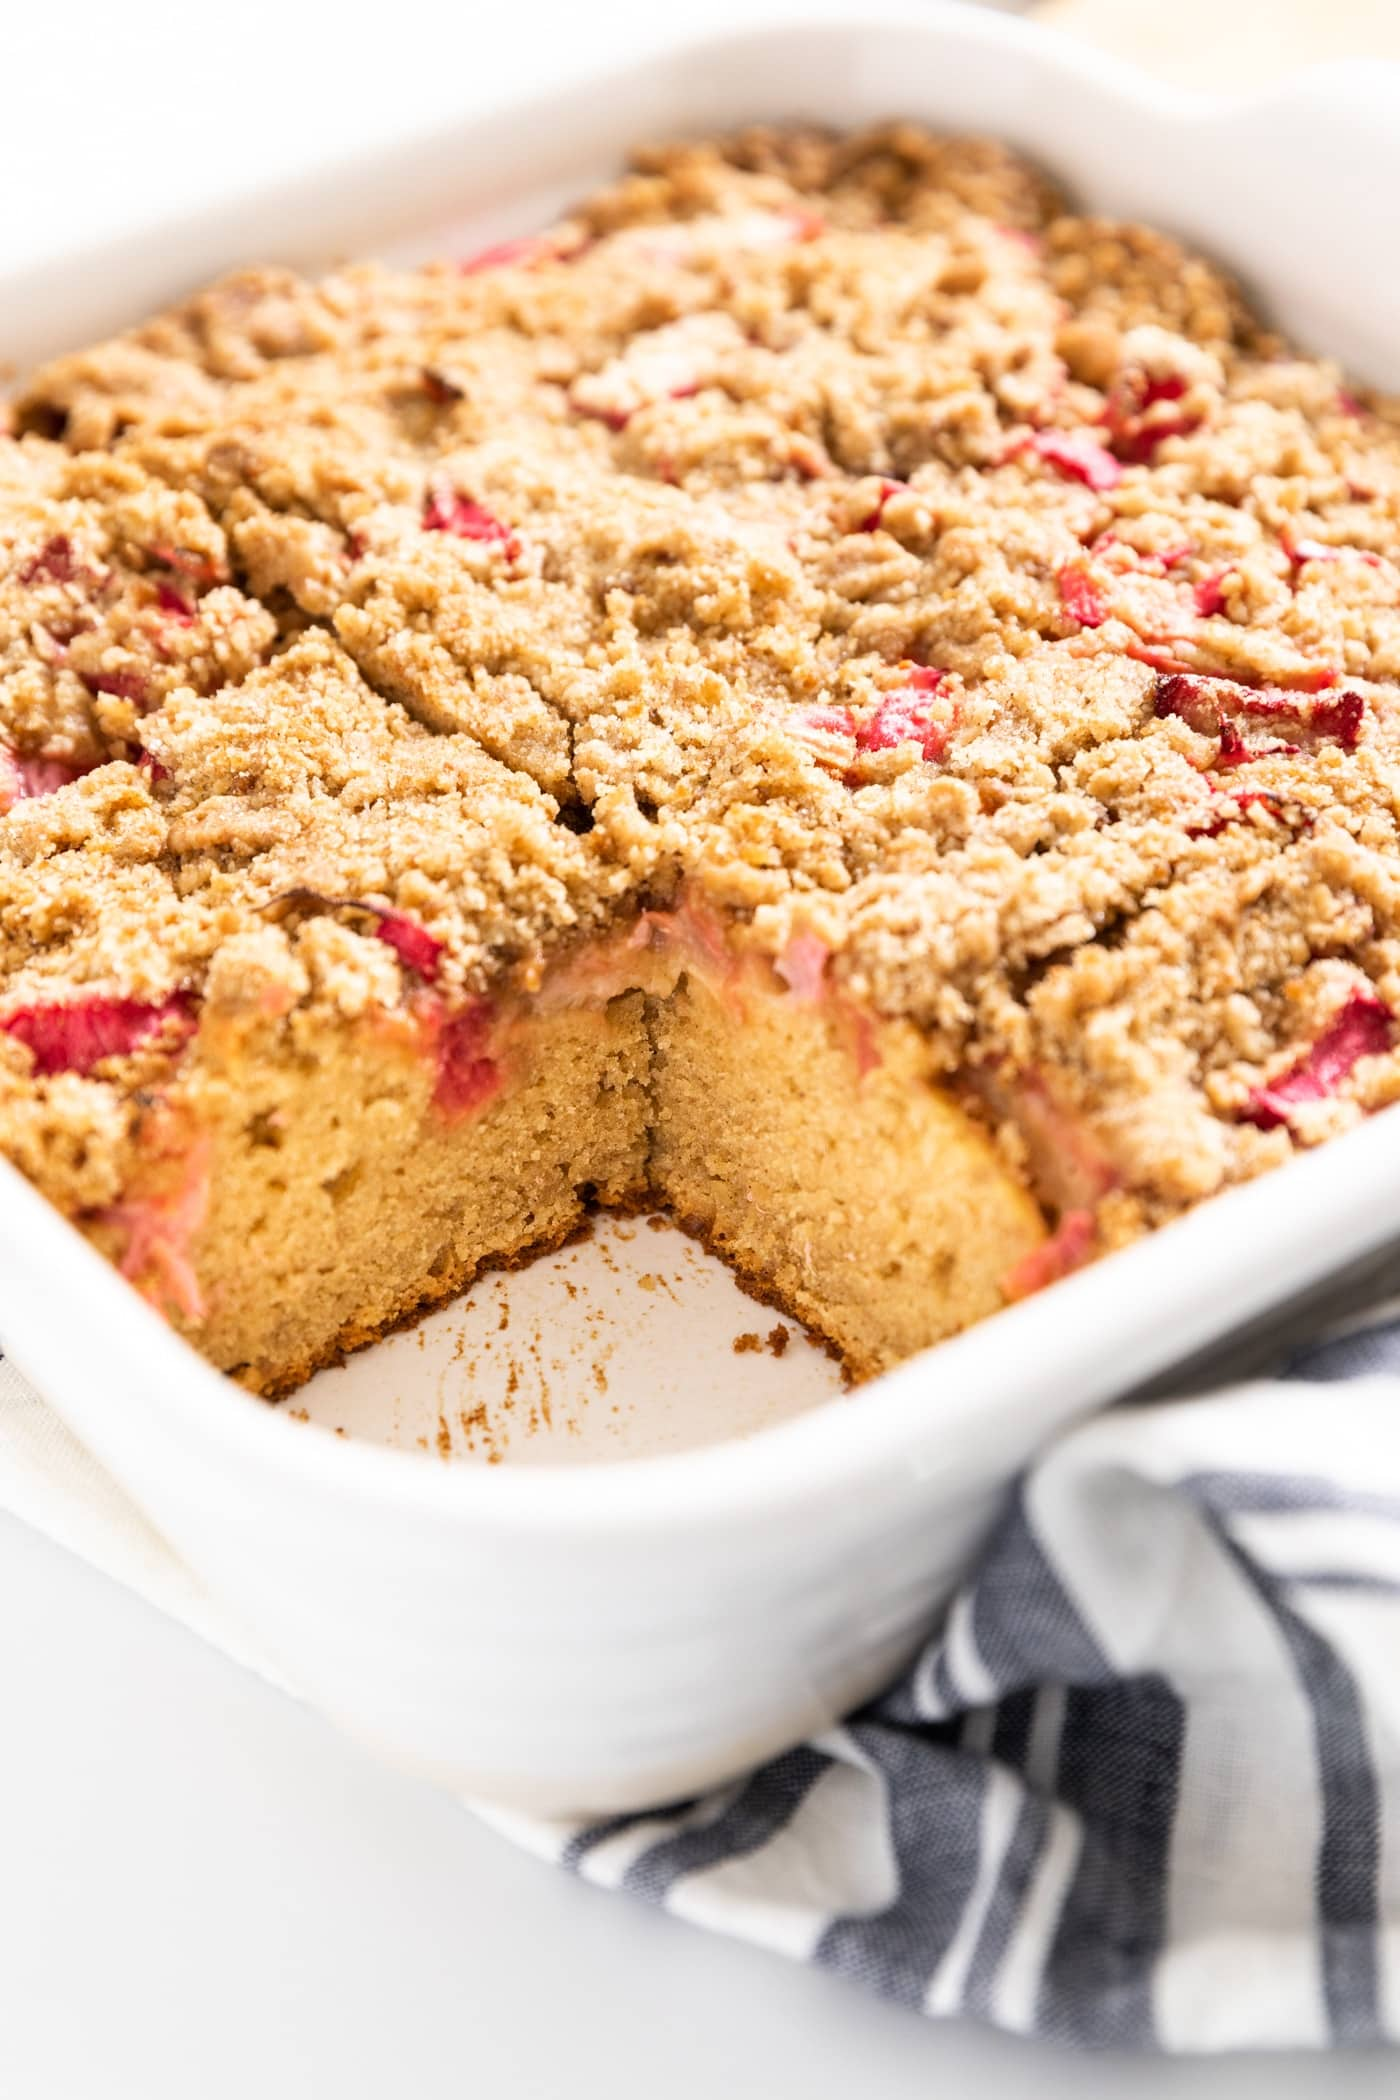 Close up view of interior of coffee cake with pieces of rhubarb within all on white surface